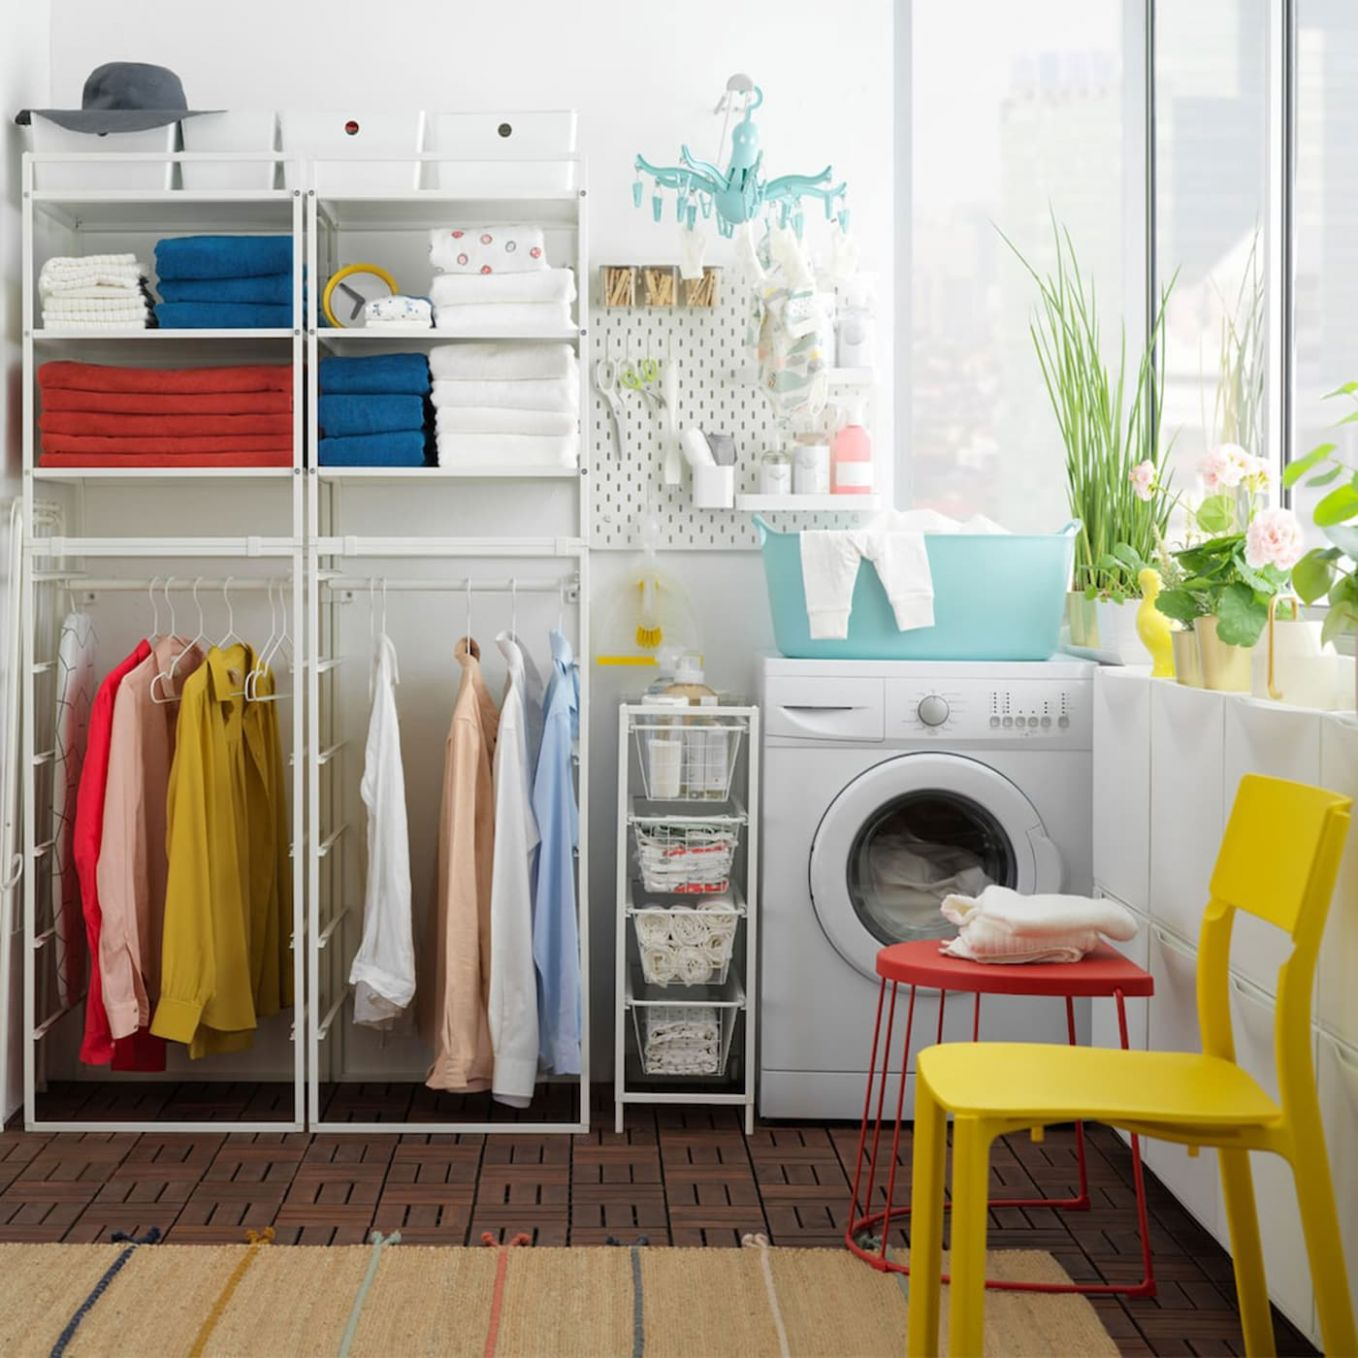 Affordable laundry room with JONAXEL shelving unit - IKEA